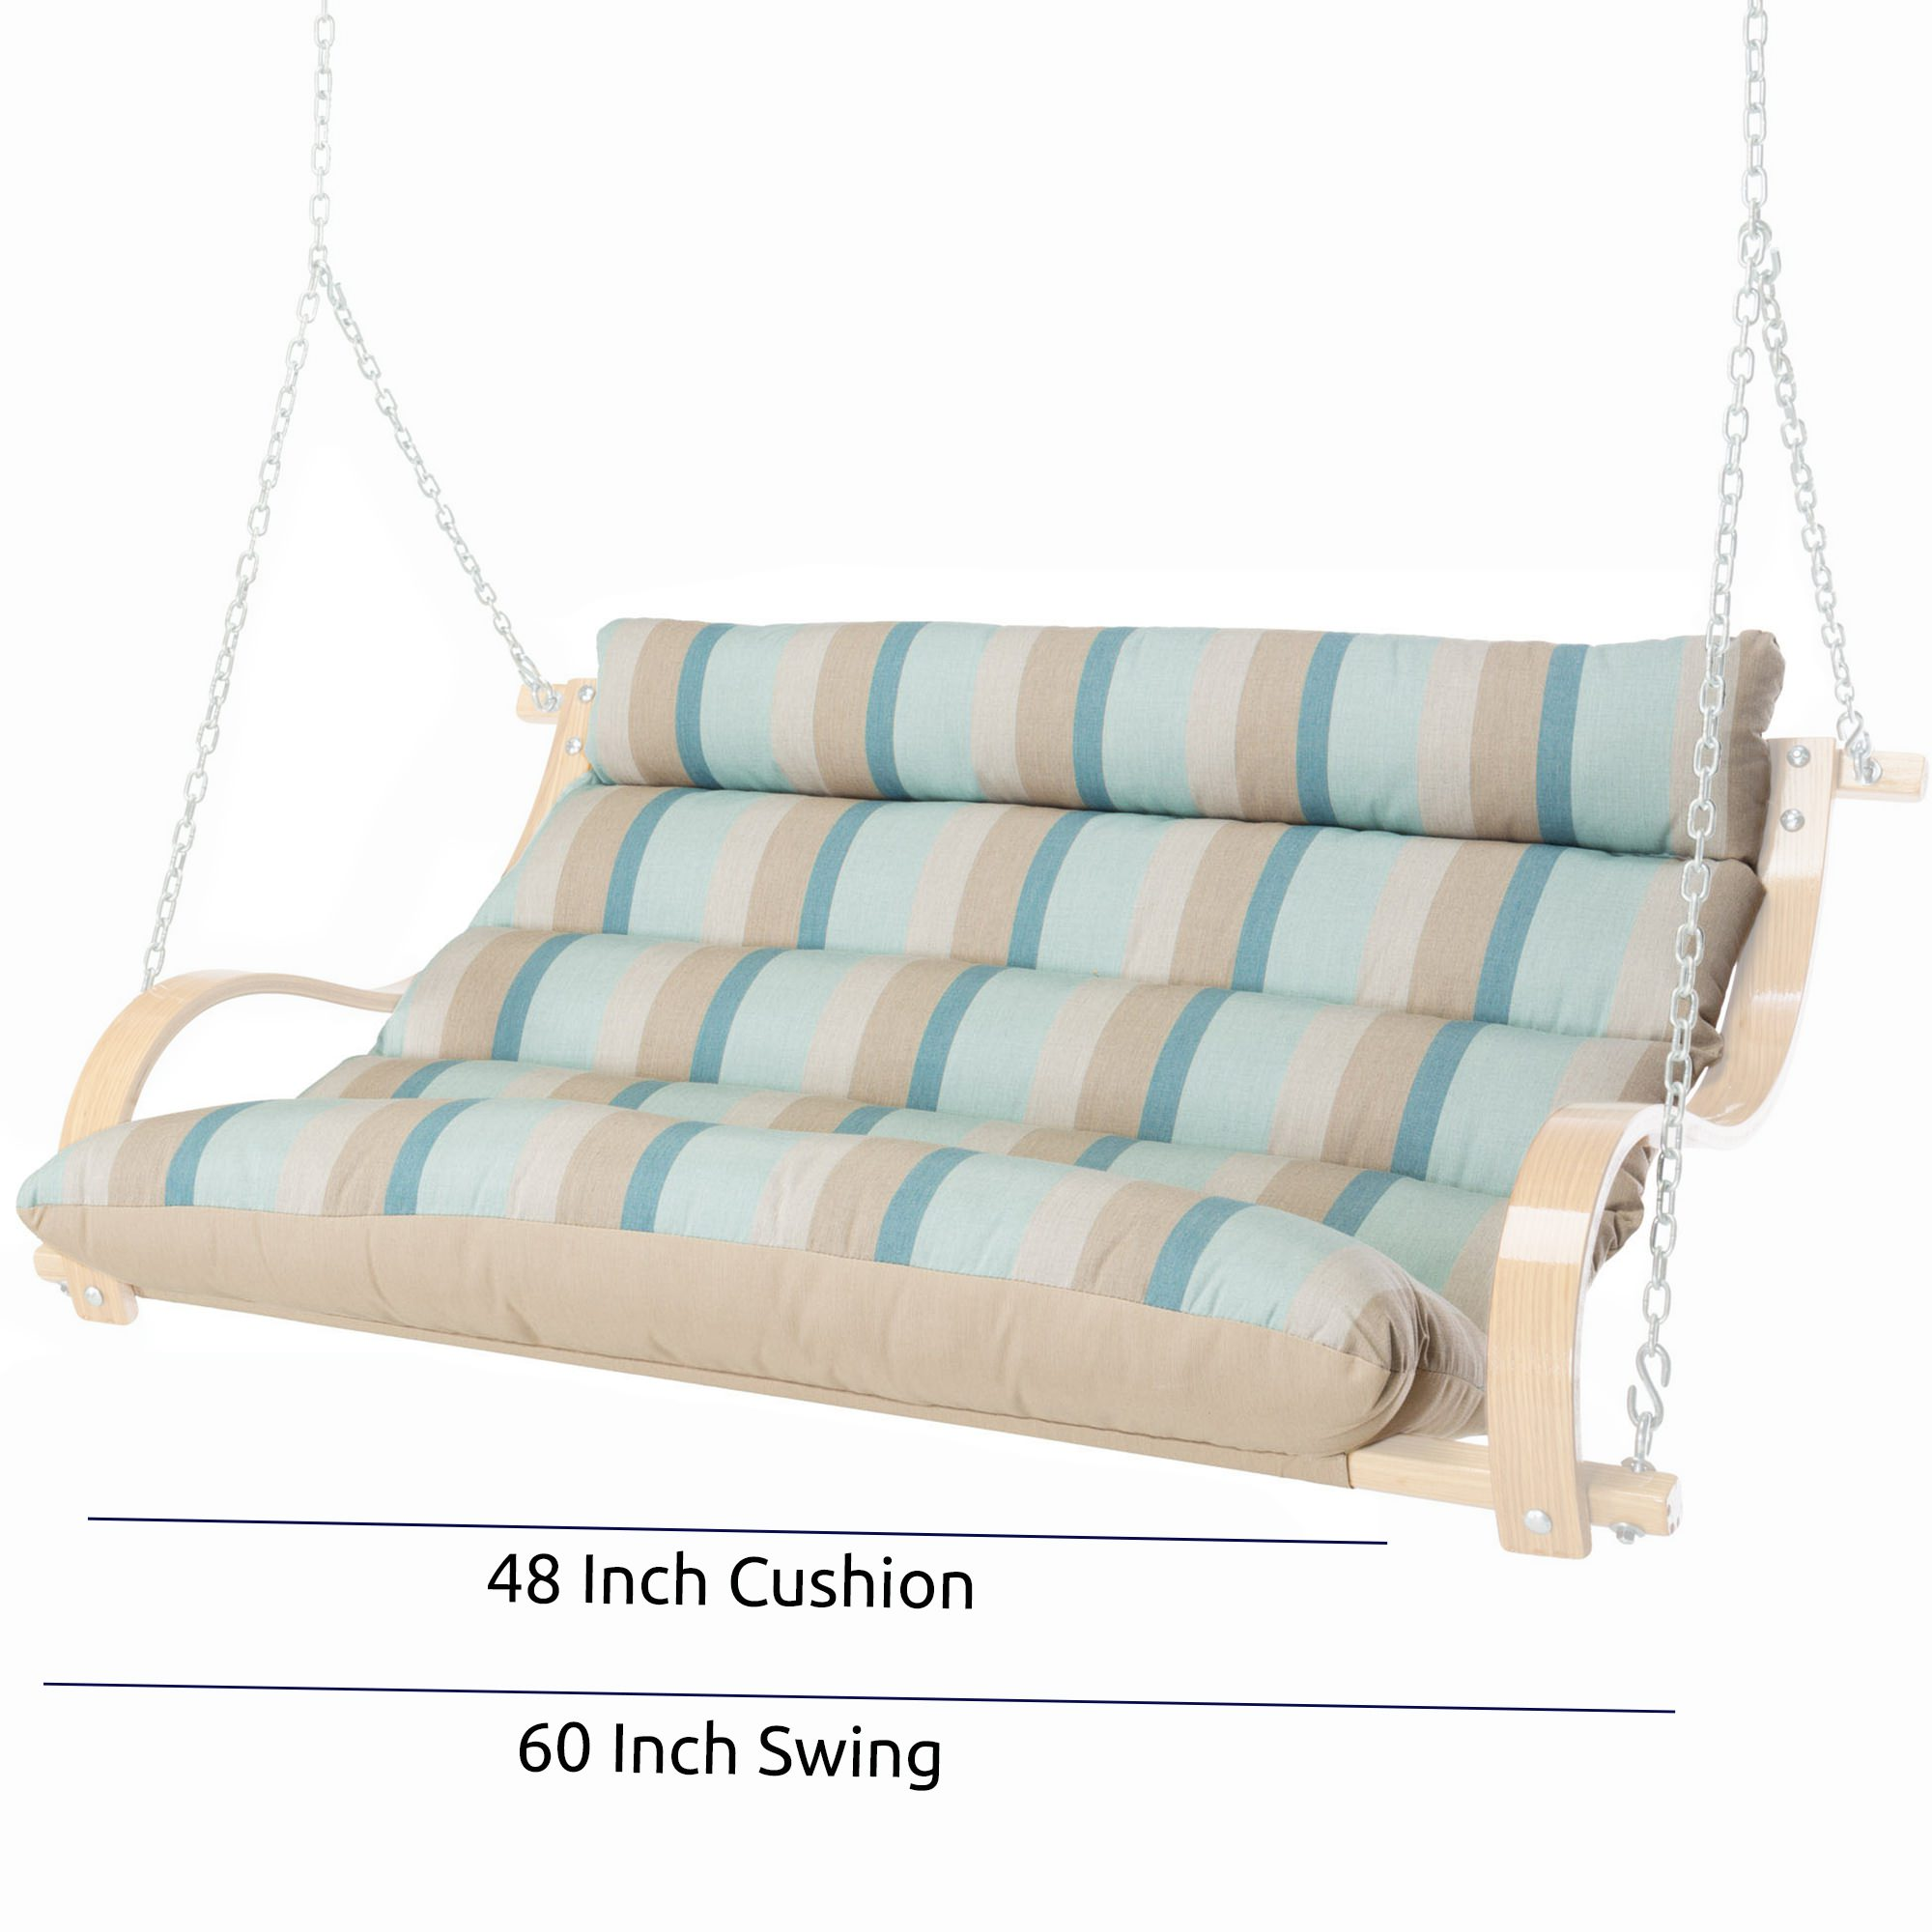 48 Inch Replacement Cushion For 60 Inch Cushioned Double